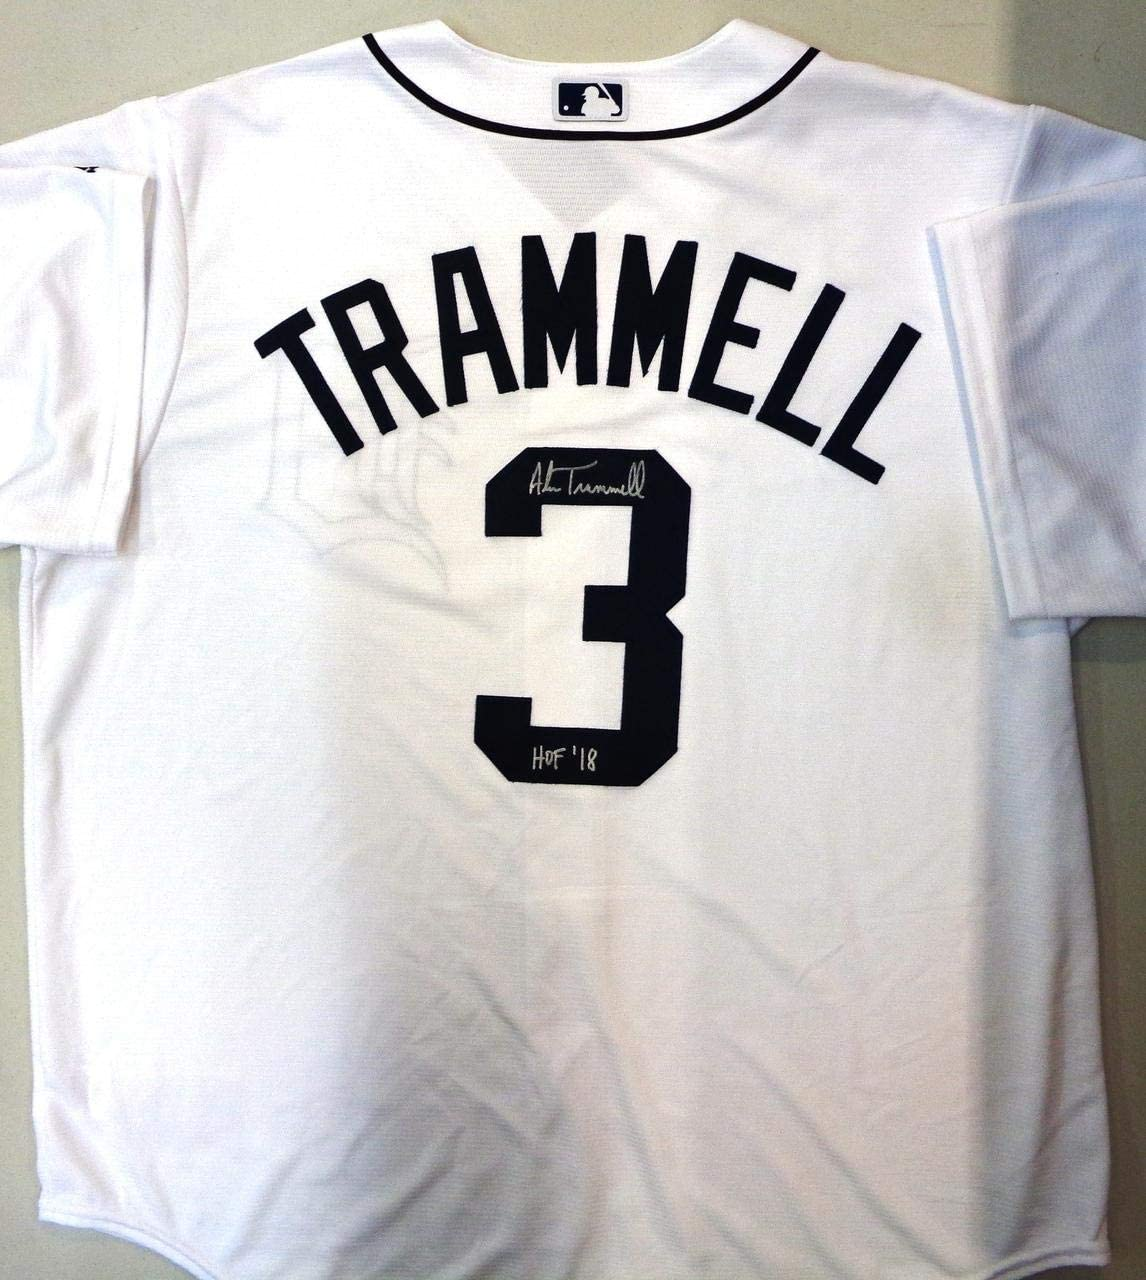 Alan Trammell Autographed Detroit Tigers Jersey Inscribed with